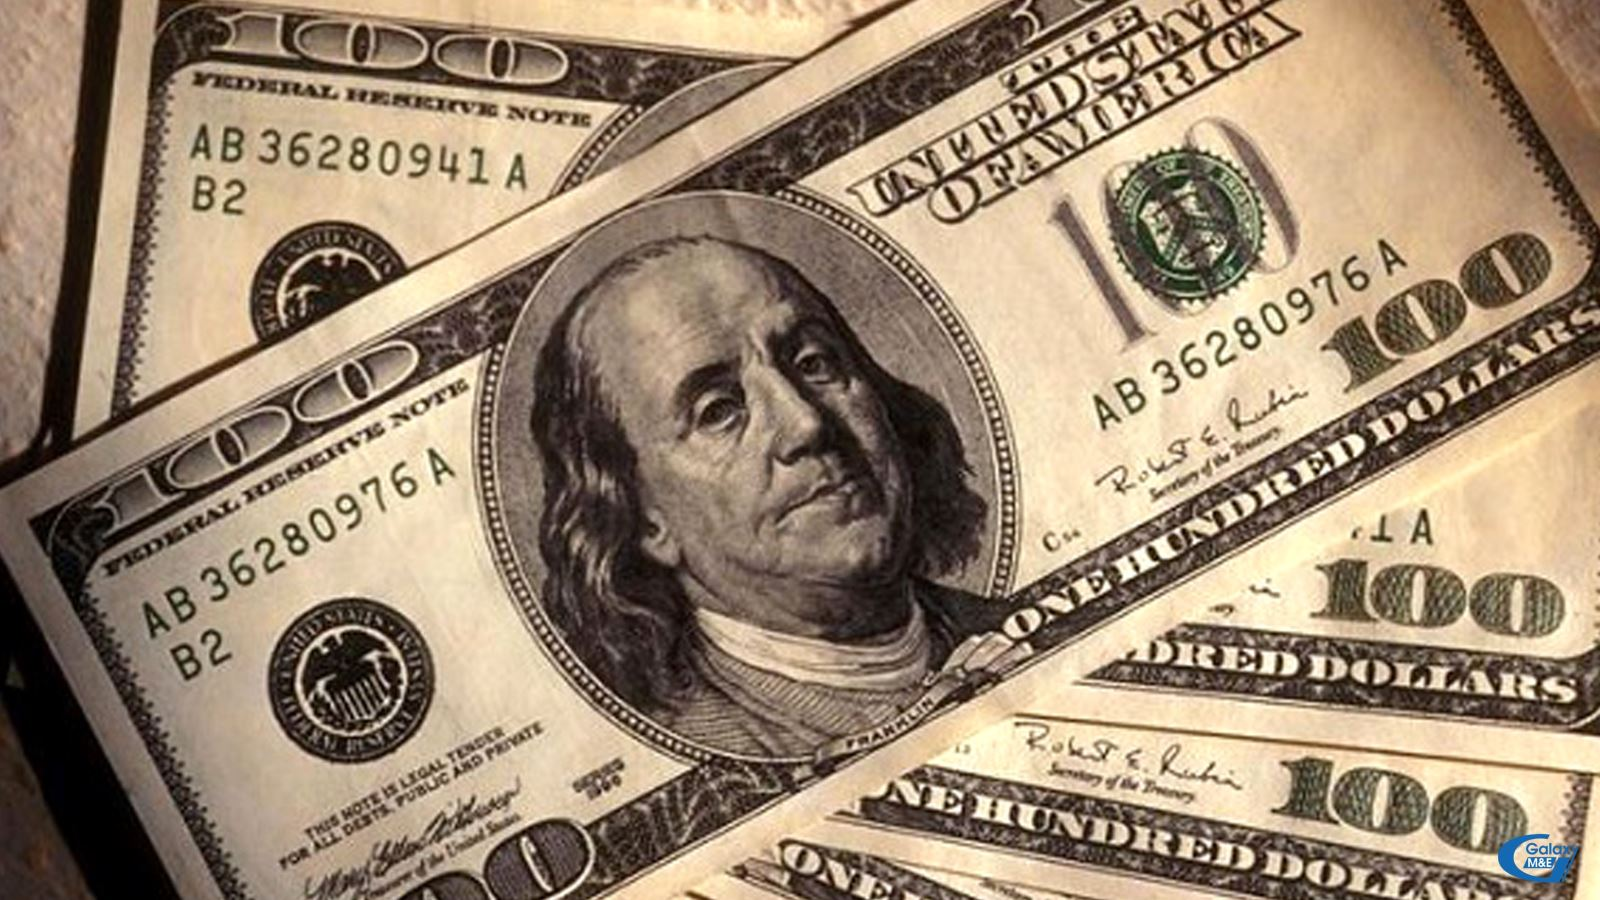 Benjamin Franklins face is on all 100 USD bills.